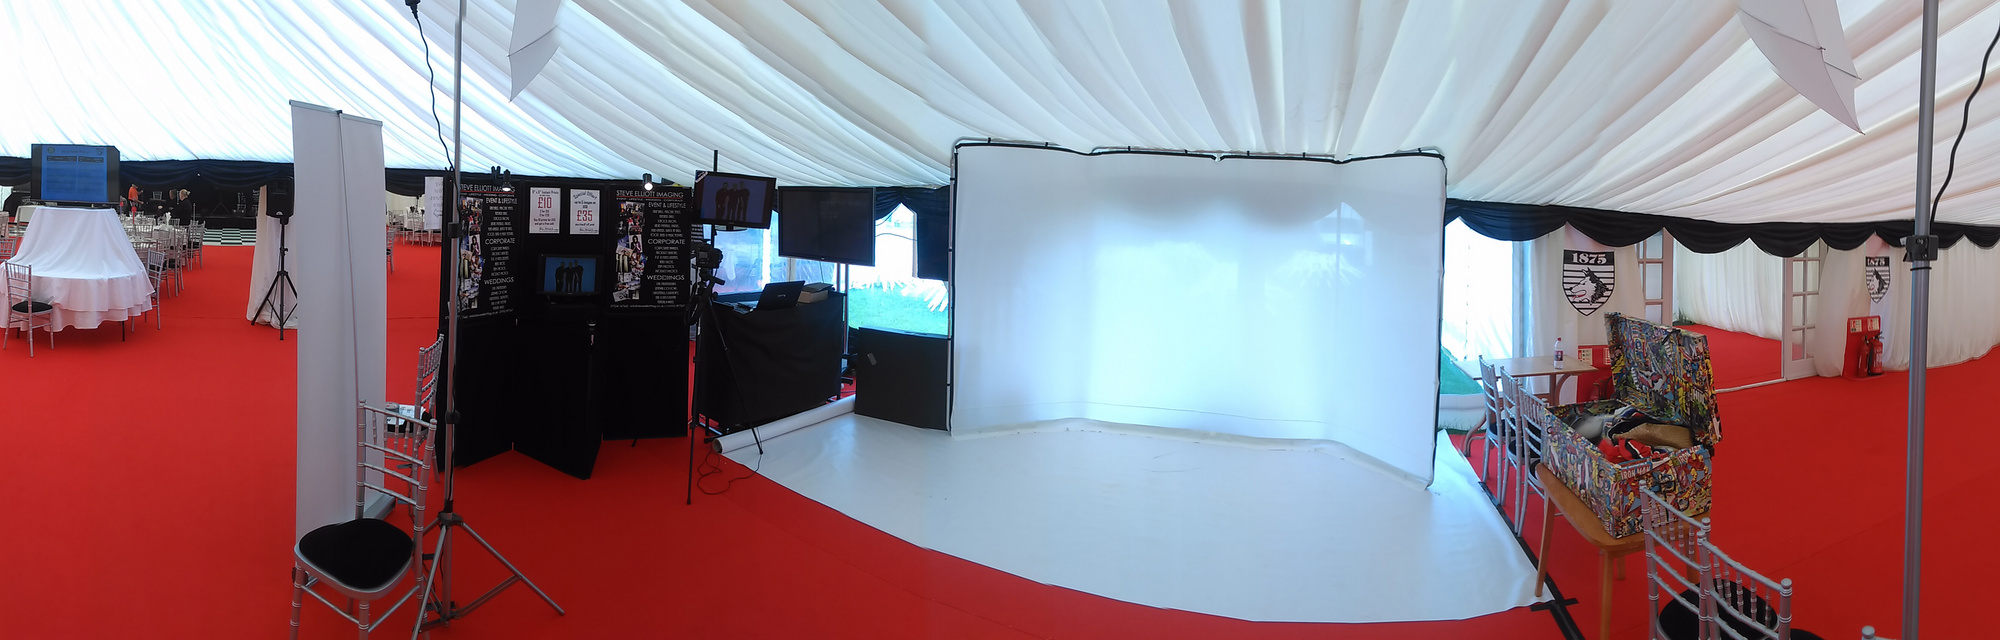 PhotoBooth & Studios